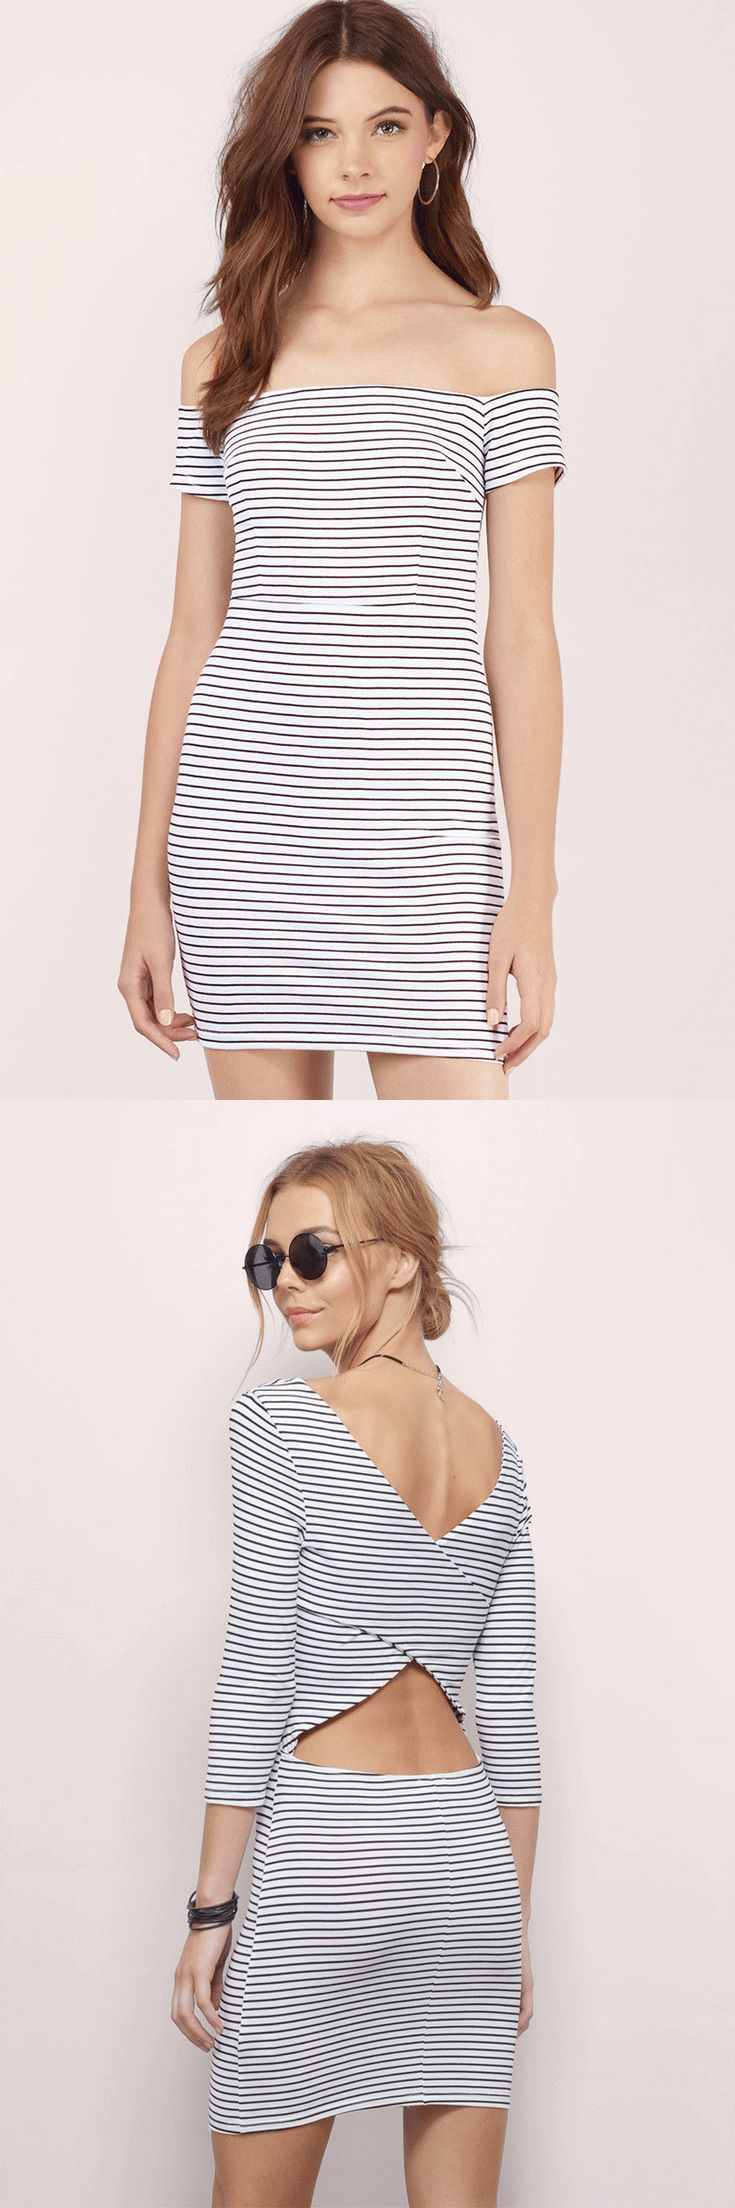 Striped Bodycon Dresses   Shop our huge selection of striped bodycons. Enjoy 50% off your first order and free shipping over $50.